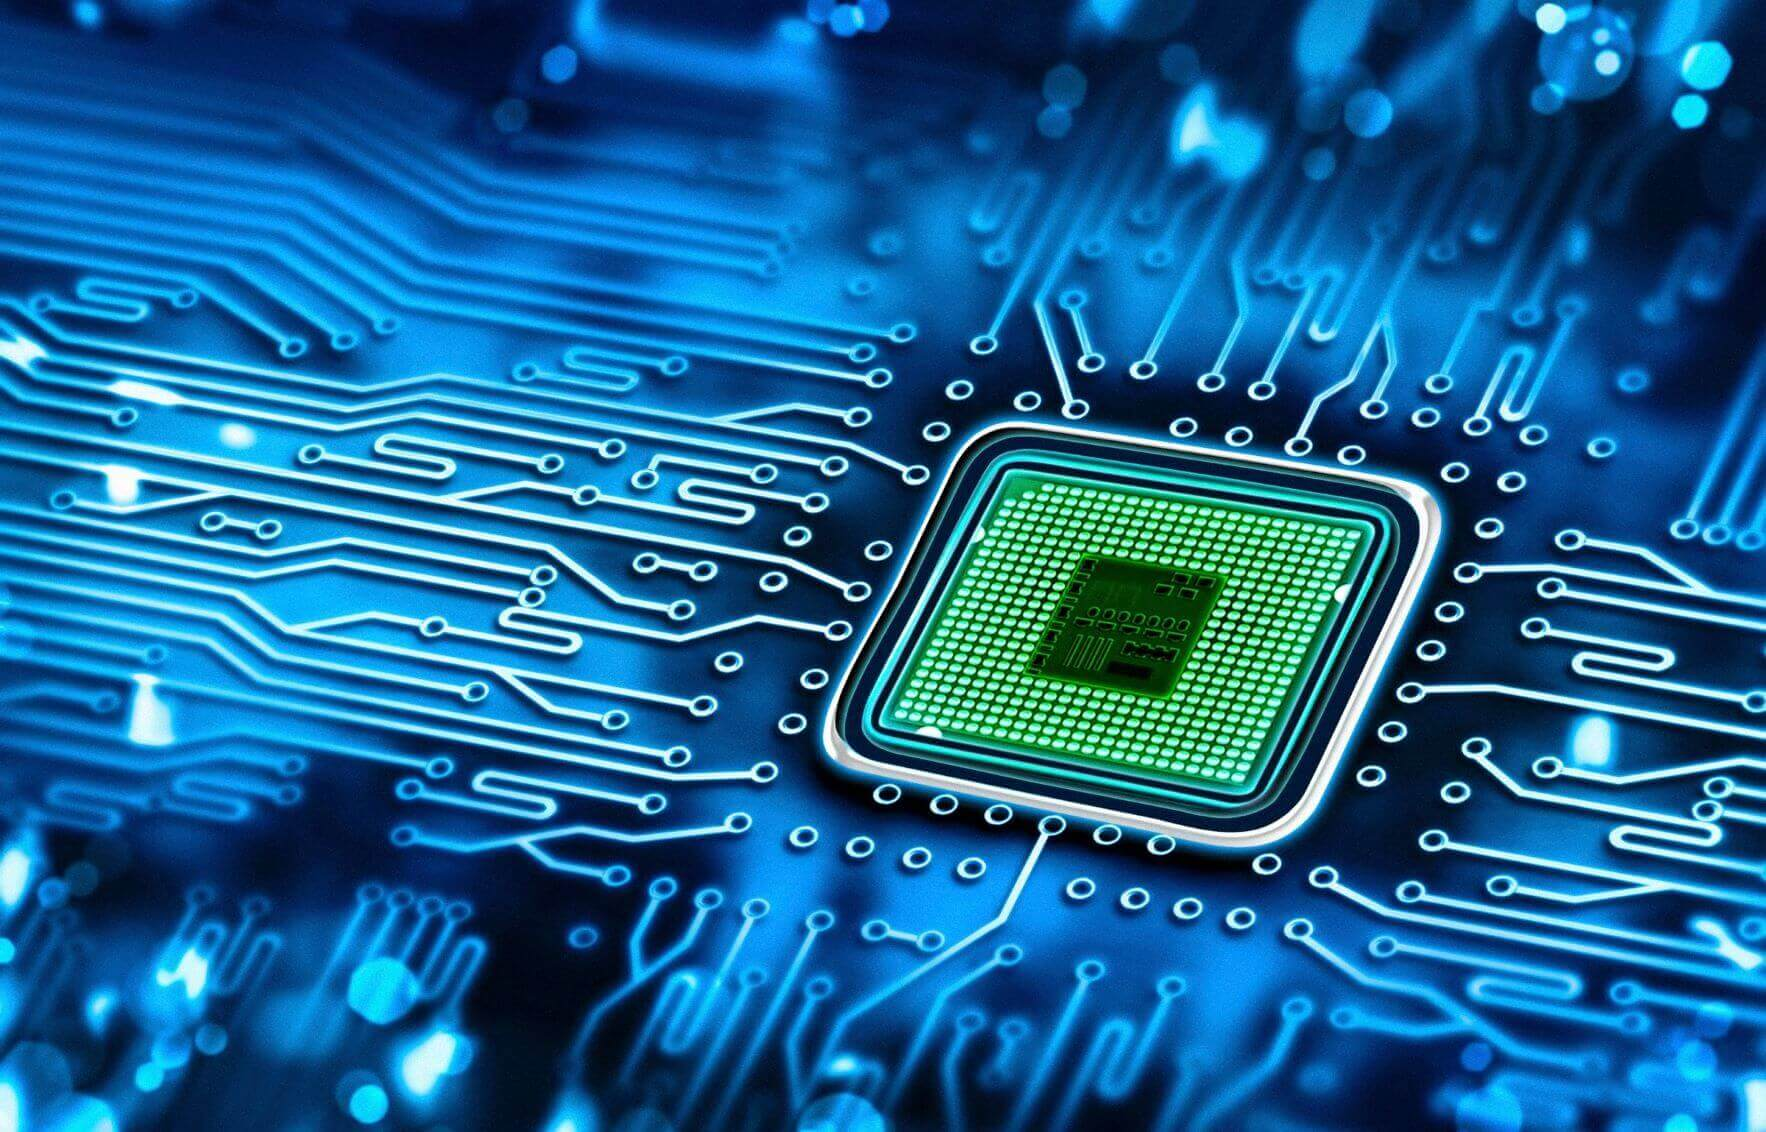 Impact of COVID-19 on the Semiconductor Industry